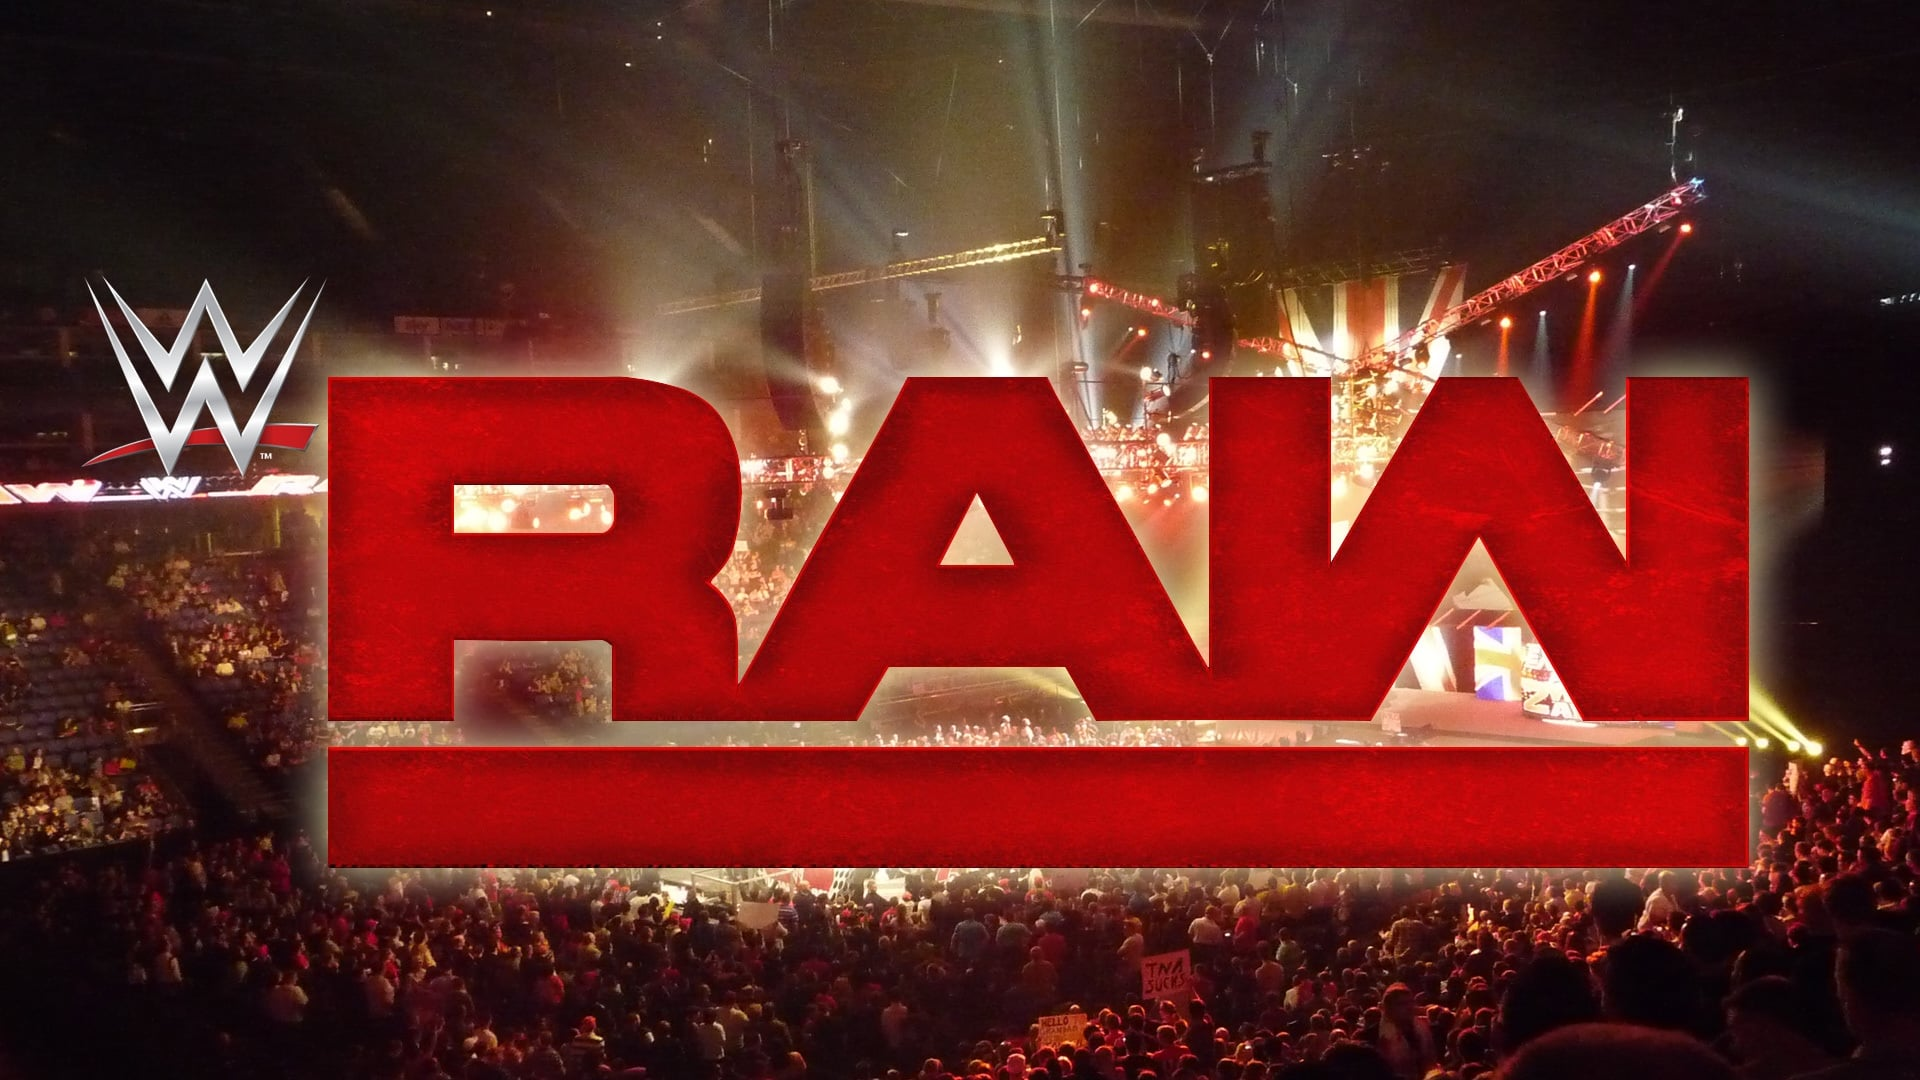 WWE Raw - Season 22 Episode 10 : March 10, 2014 (Memphis, TN)